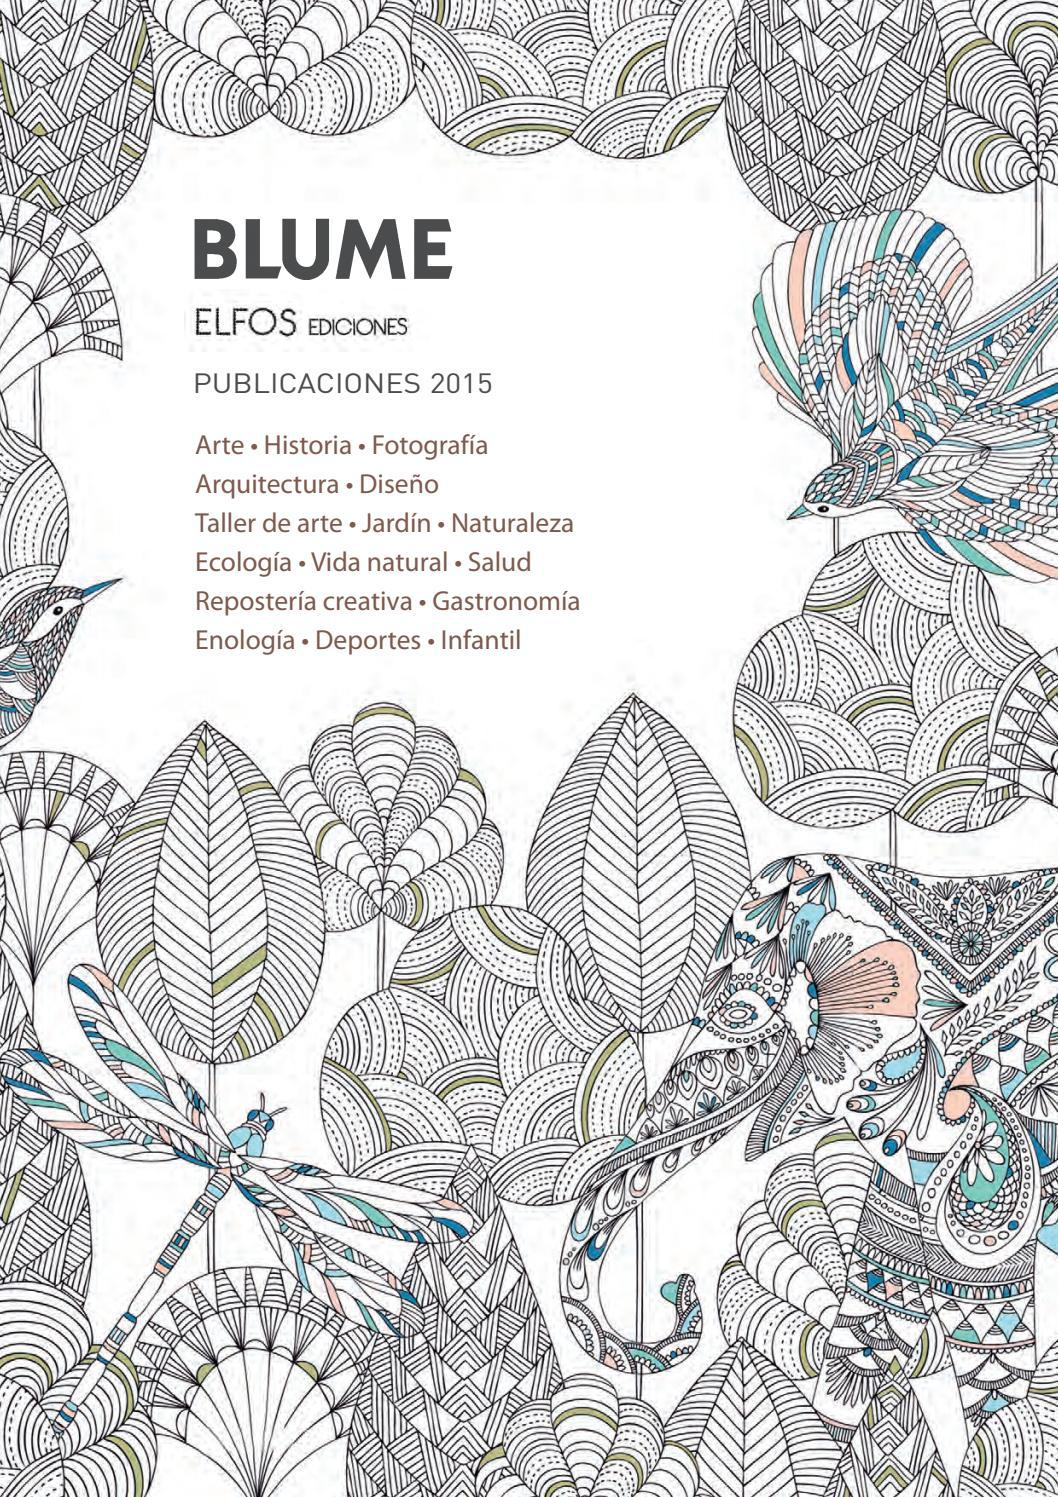 BLUME elfos ediciones by Editorial Blume - issuu